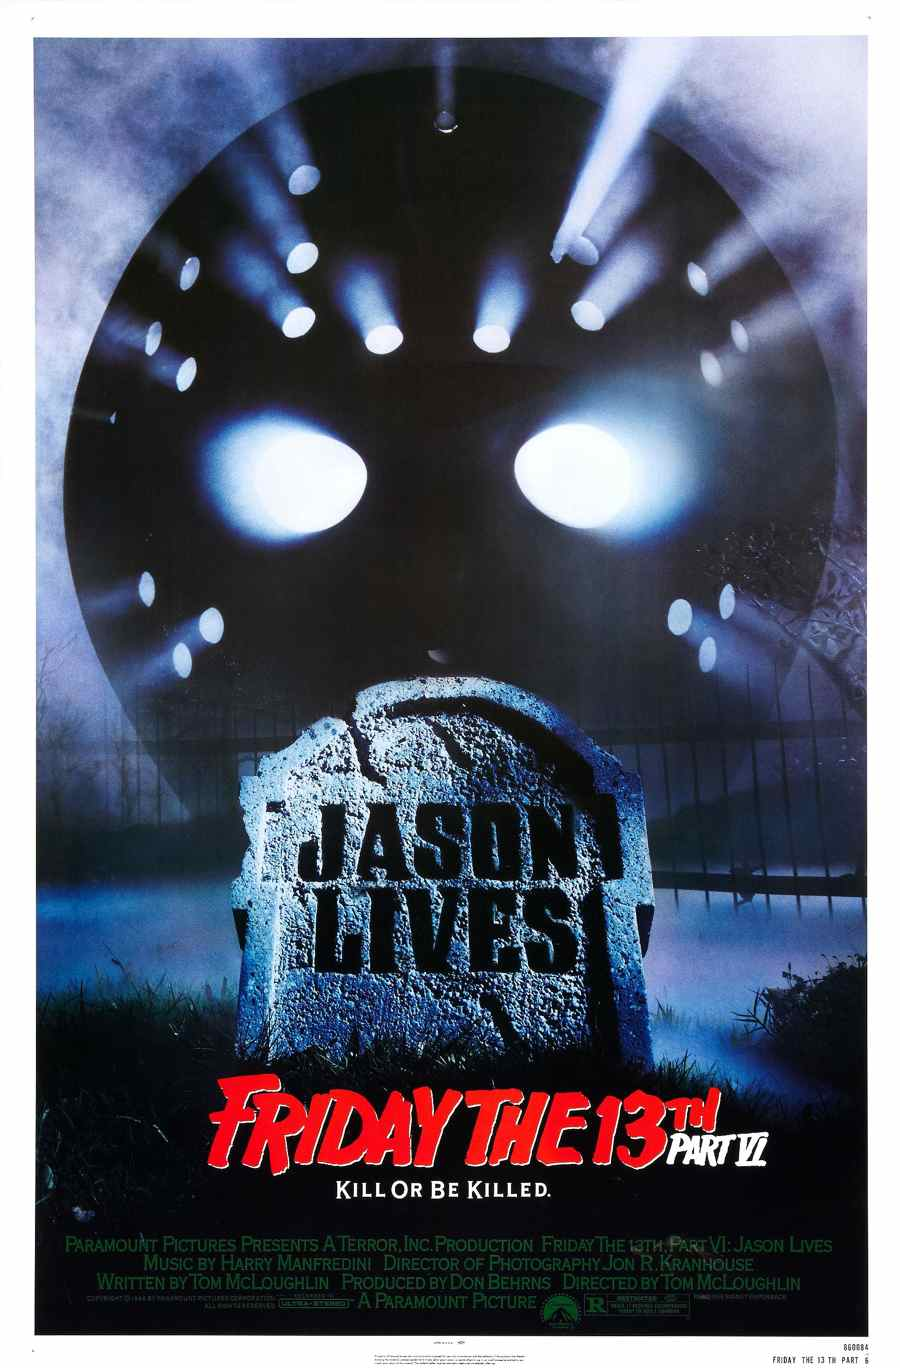 jason-lives-friday-the-13th-part-vi-1986-poster.jpg